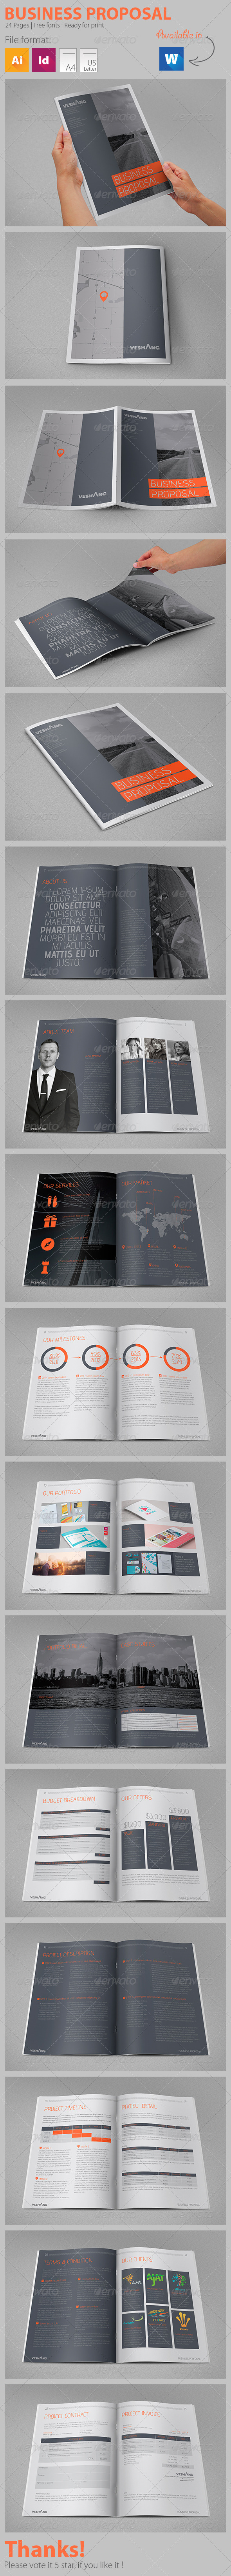 GraphicRiver Business Proposal 7905103